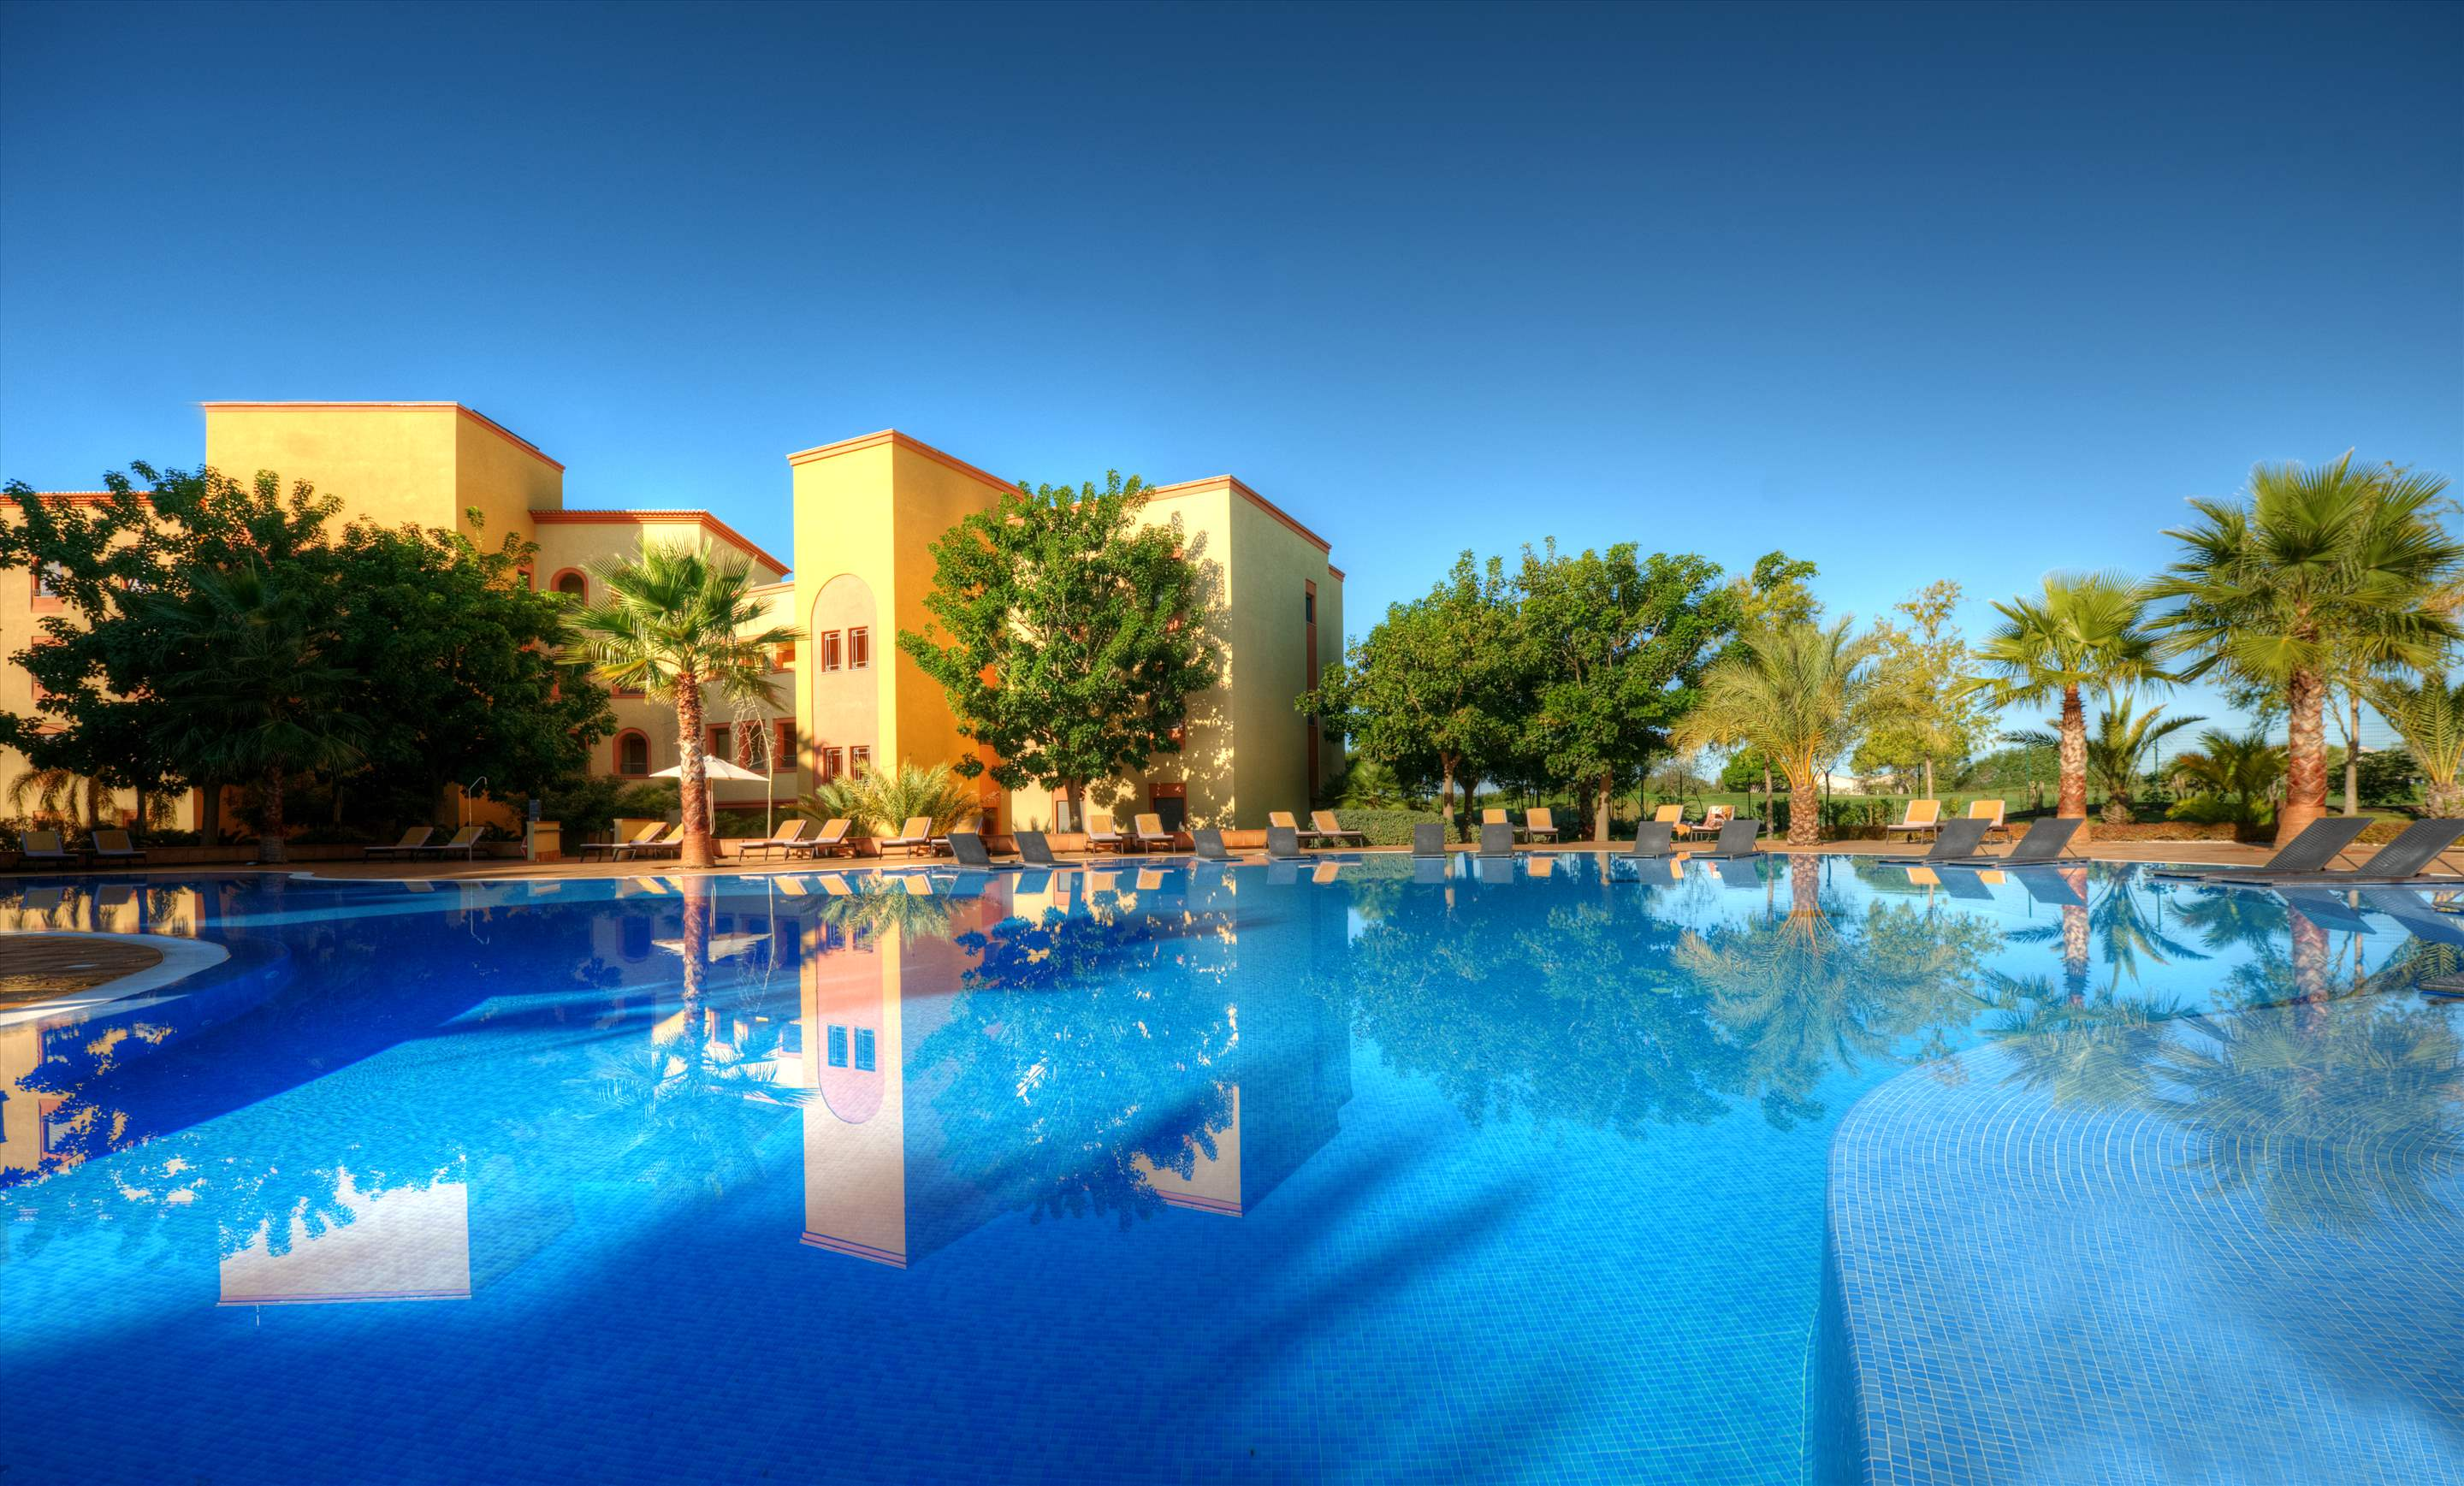 The Residences at Victoria by TIVOLI 2 Bed Apt , Deluxe,Golf or Pool View, 2 bedroom apartment in The Residences at Victoria by TIVOLI, Algarve Photo #1